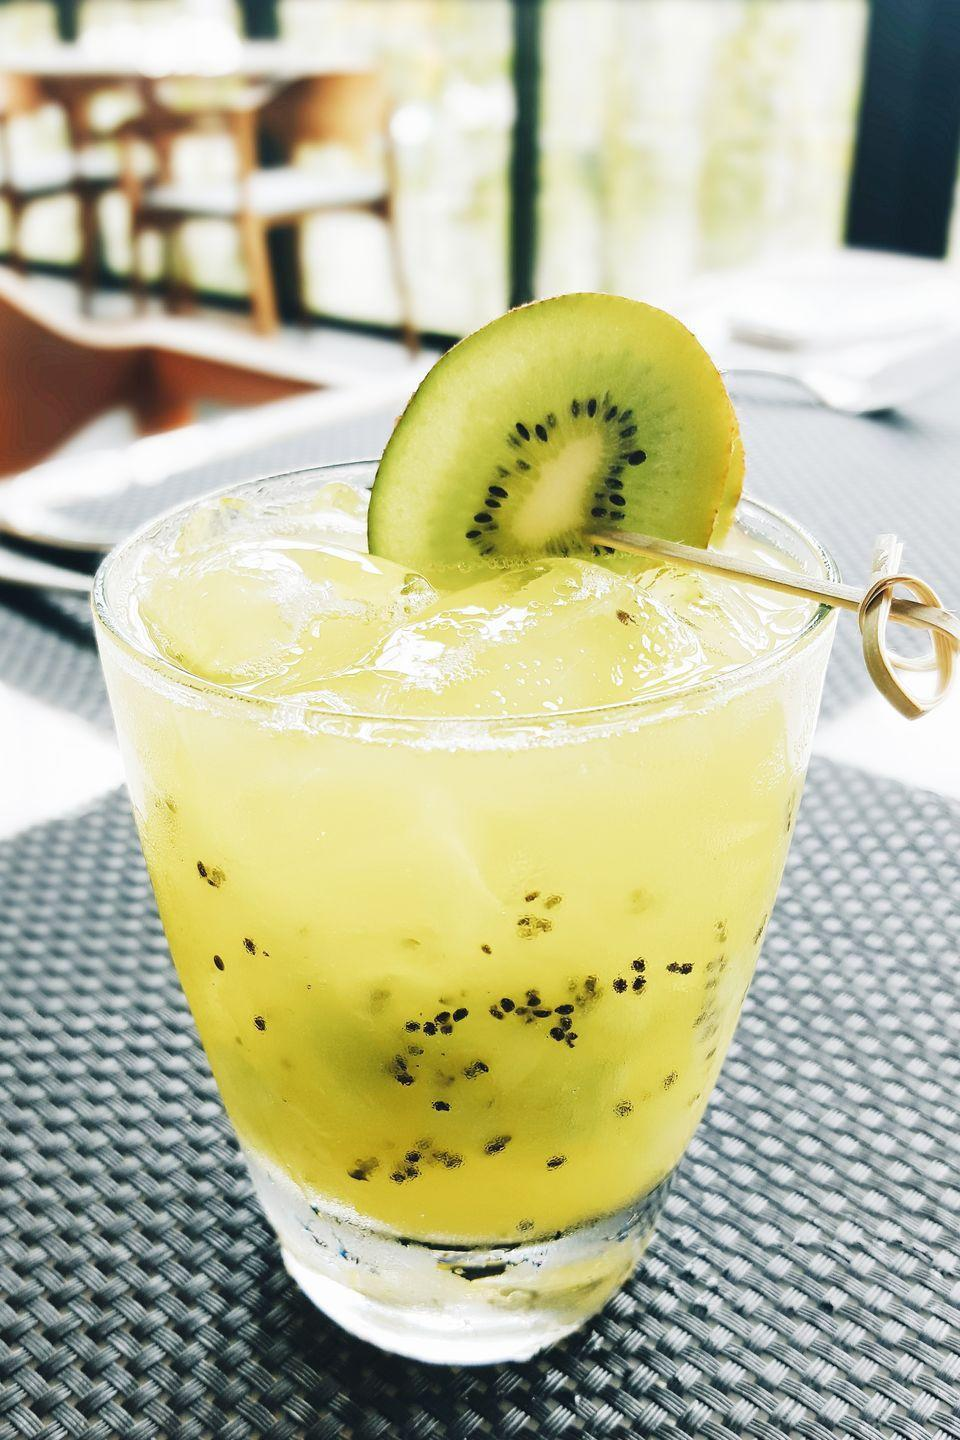 "<p>One sip and you'll fall in love with this unique drink that perfectly balances sweet and tart flavors.</p><p><strong><em><a href=""https://www.womansday.com/food-recipes/food-drinks/recipes/a21009/kiwi-lemonade-spritzer/"" rel=""nofollow noopener"" target=""_blank"" data-ylk=""slk:Get the recipe Kiwi Lemonade Spritzer"" class=""link rapid-noclick-resp"">Get the recipe Kiwi Lemonade Spritzer</a>.</em></strong></p>"